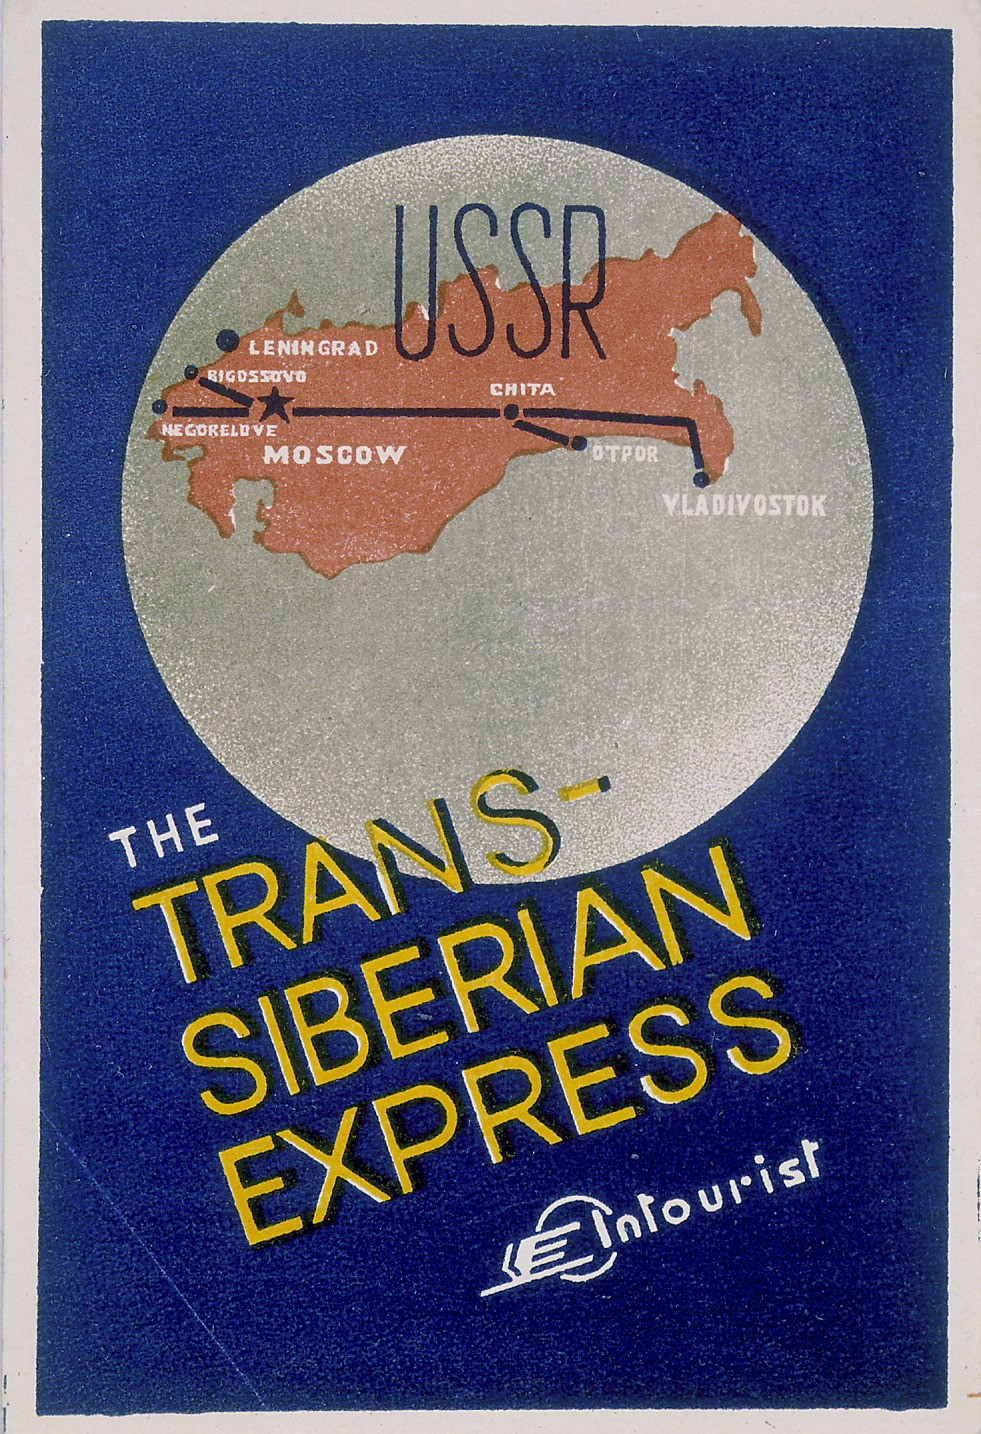 Suitcase label for Trans-Siberian Express [LCID: 2000si34]